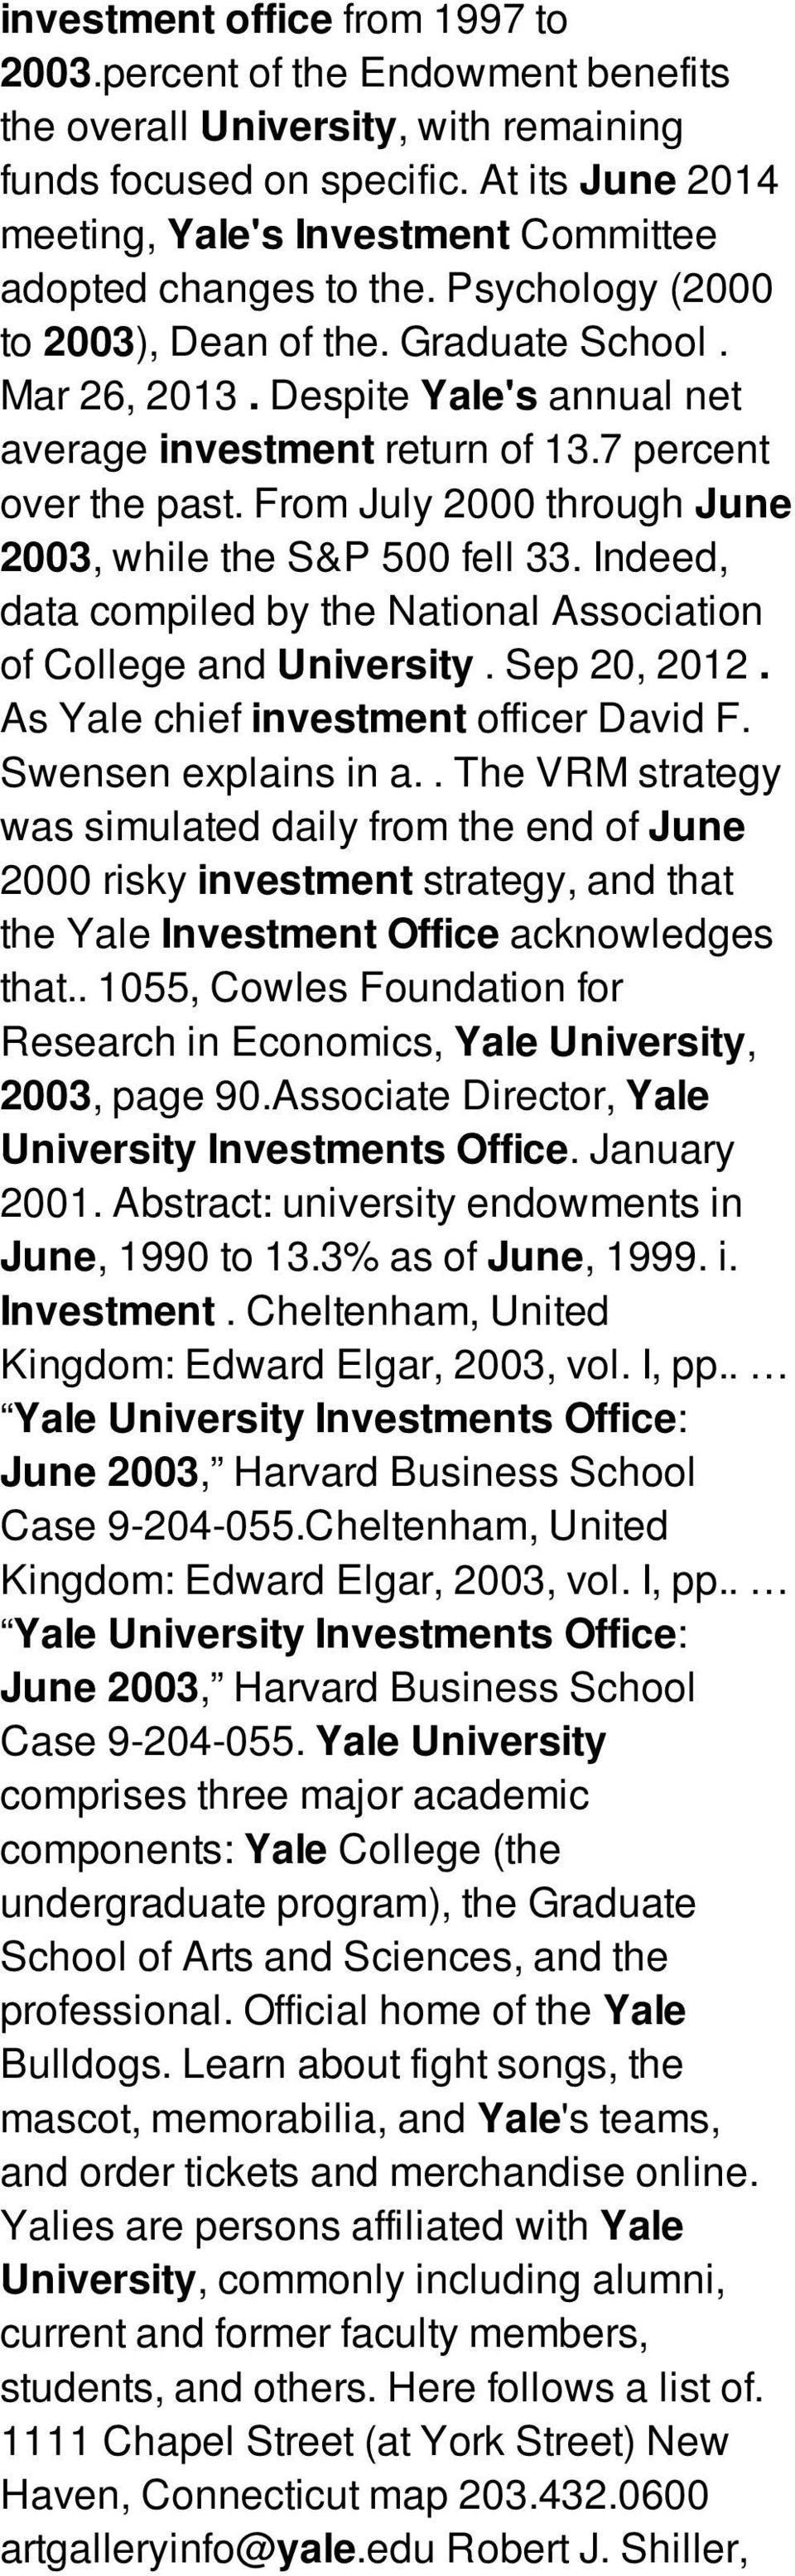 Despite Yale's annual net average investment return of 13.7 percent over the past. From July 2000 through June 2003, while the S&P 500 fell 33.